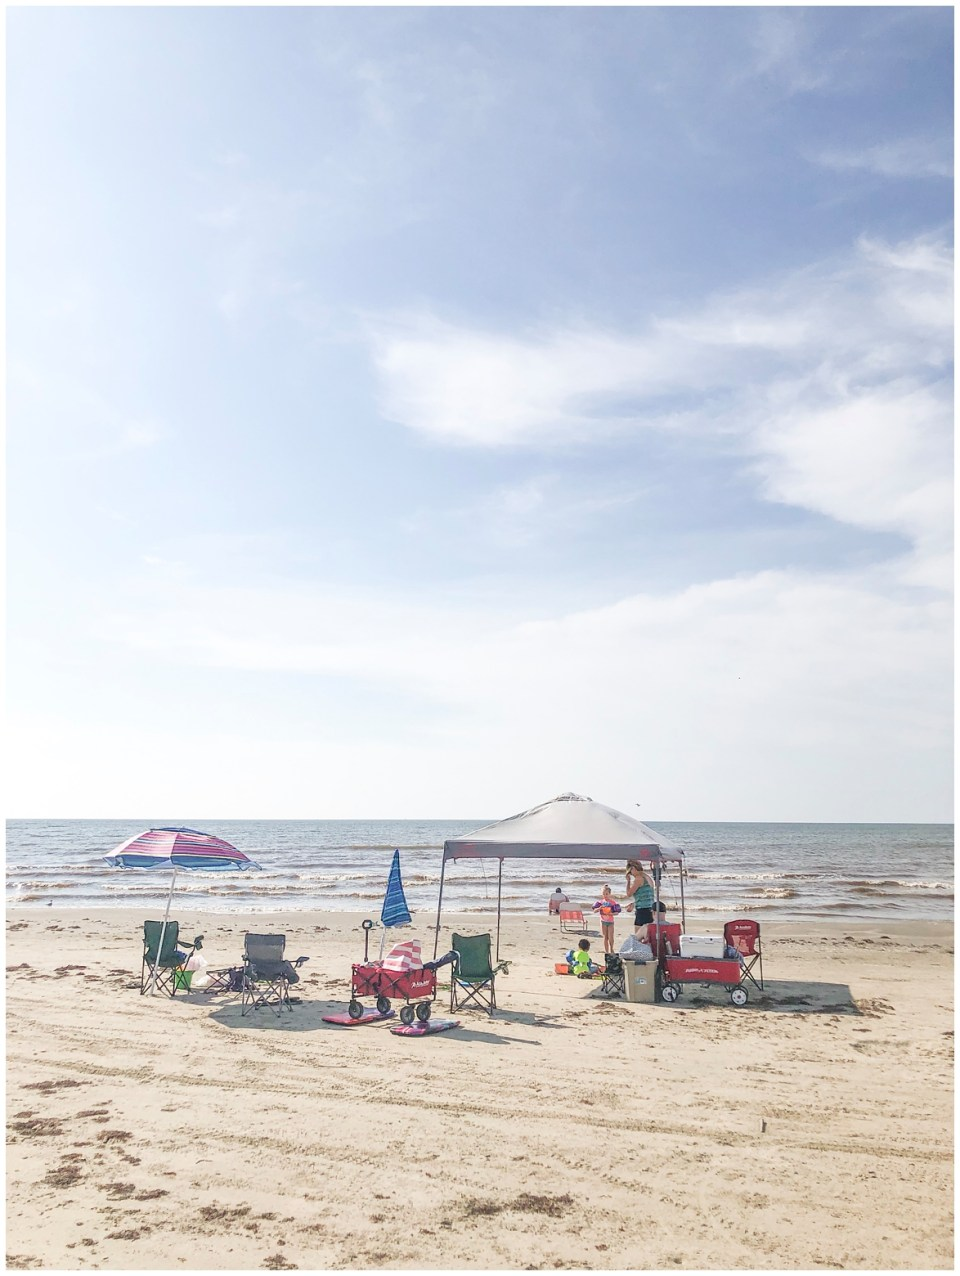 July 2019 extended family beach trip to Galveston, TX